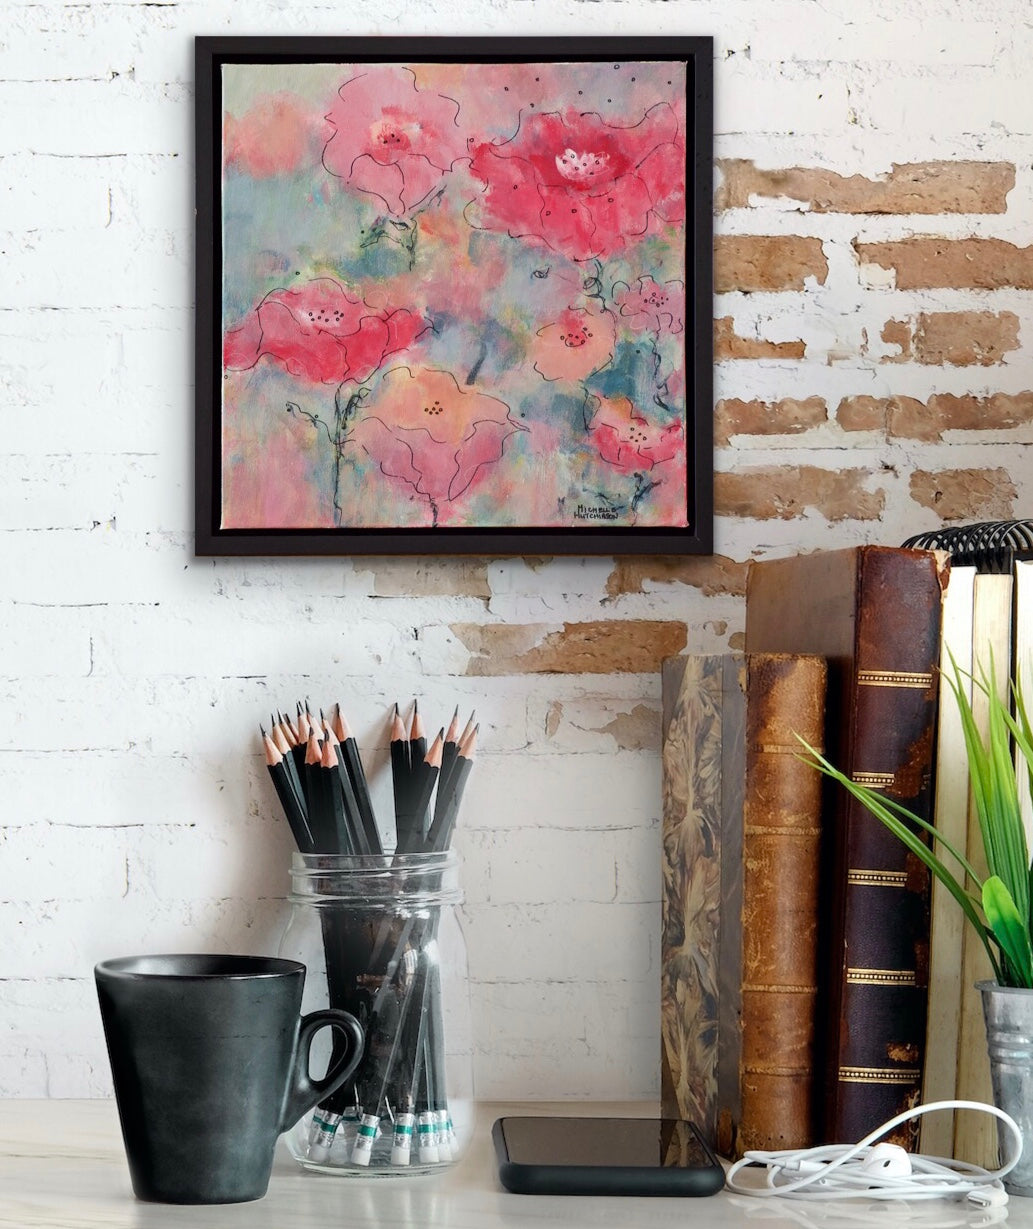 Displayed on a white brick wall above a desk. Abstract flowers in reds, pinks, and corals against a background of blue greens is bursting with colourful personality in this original painting!